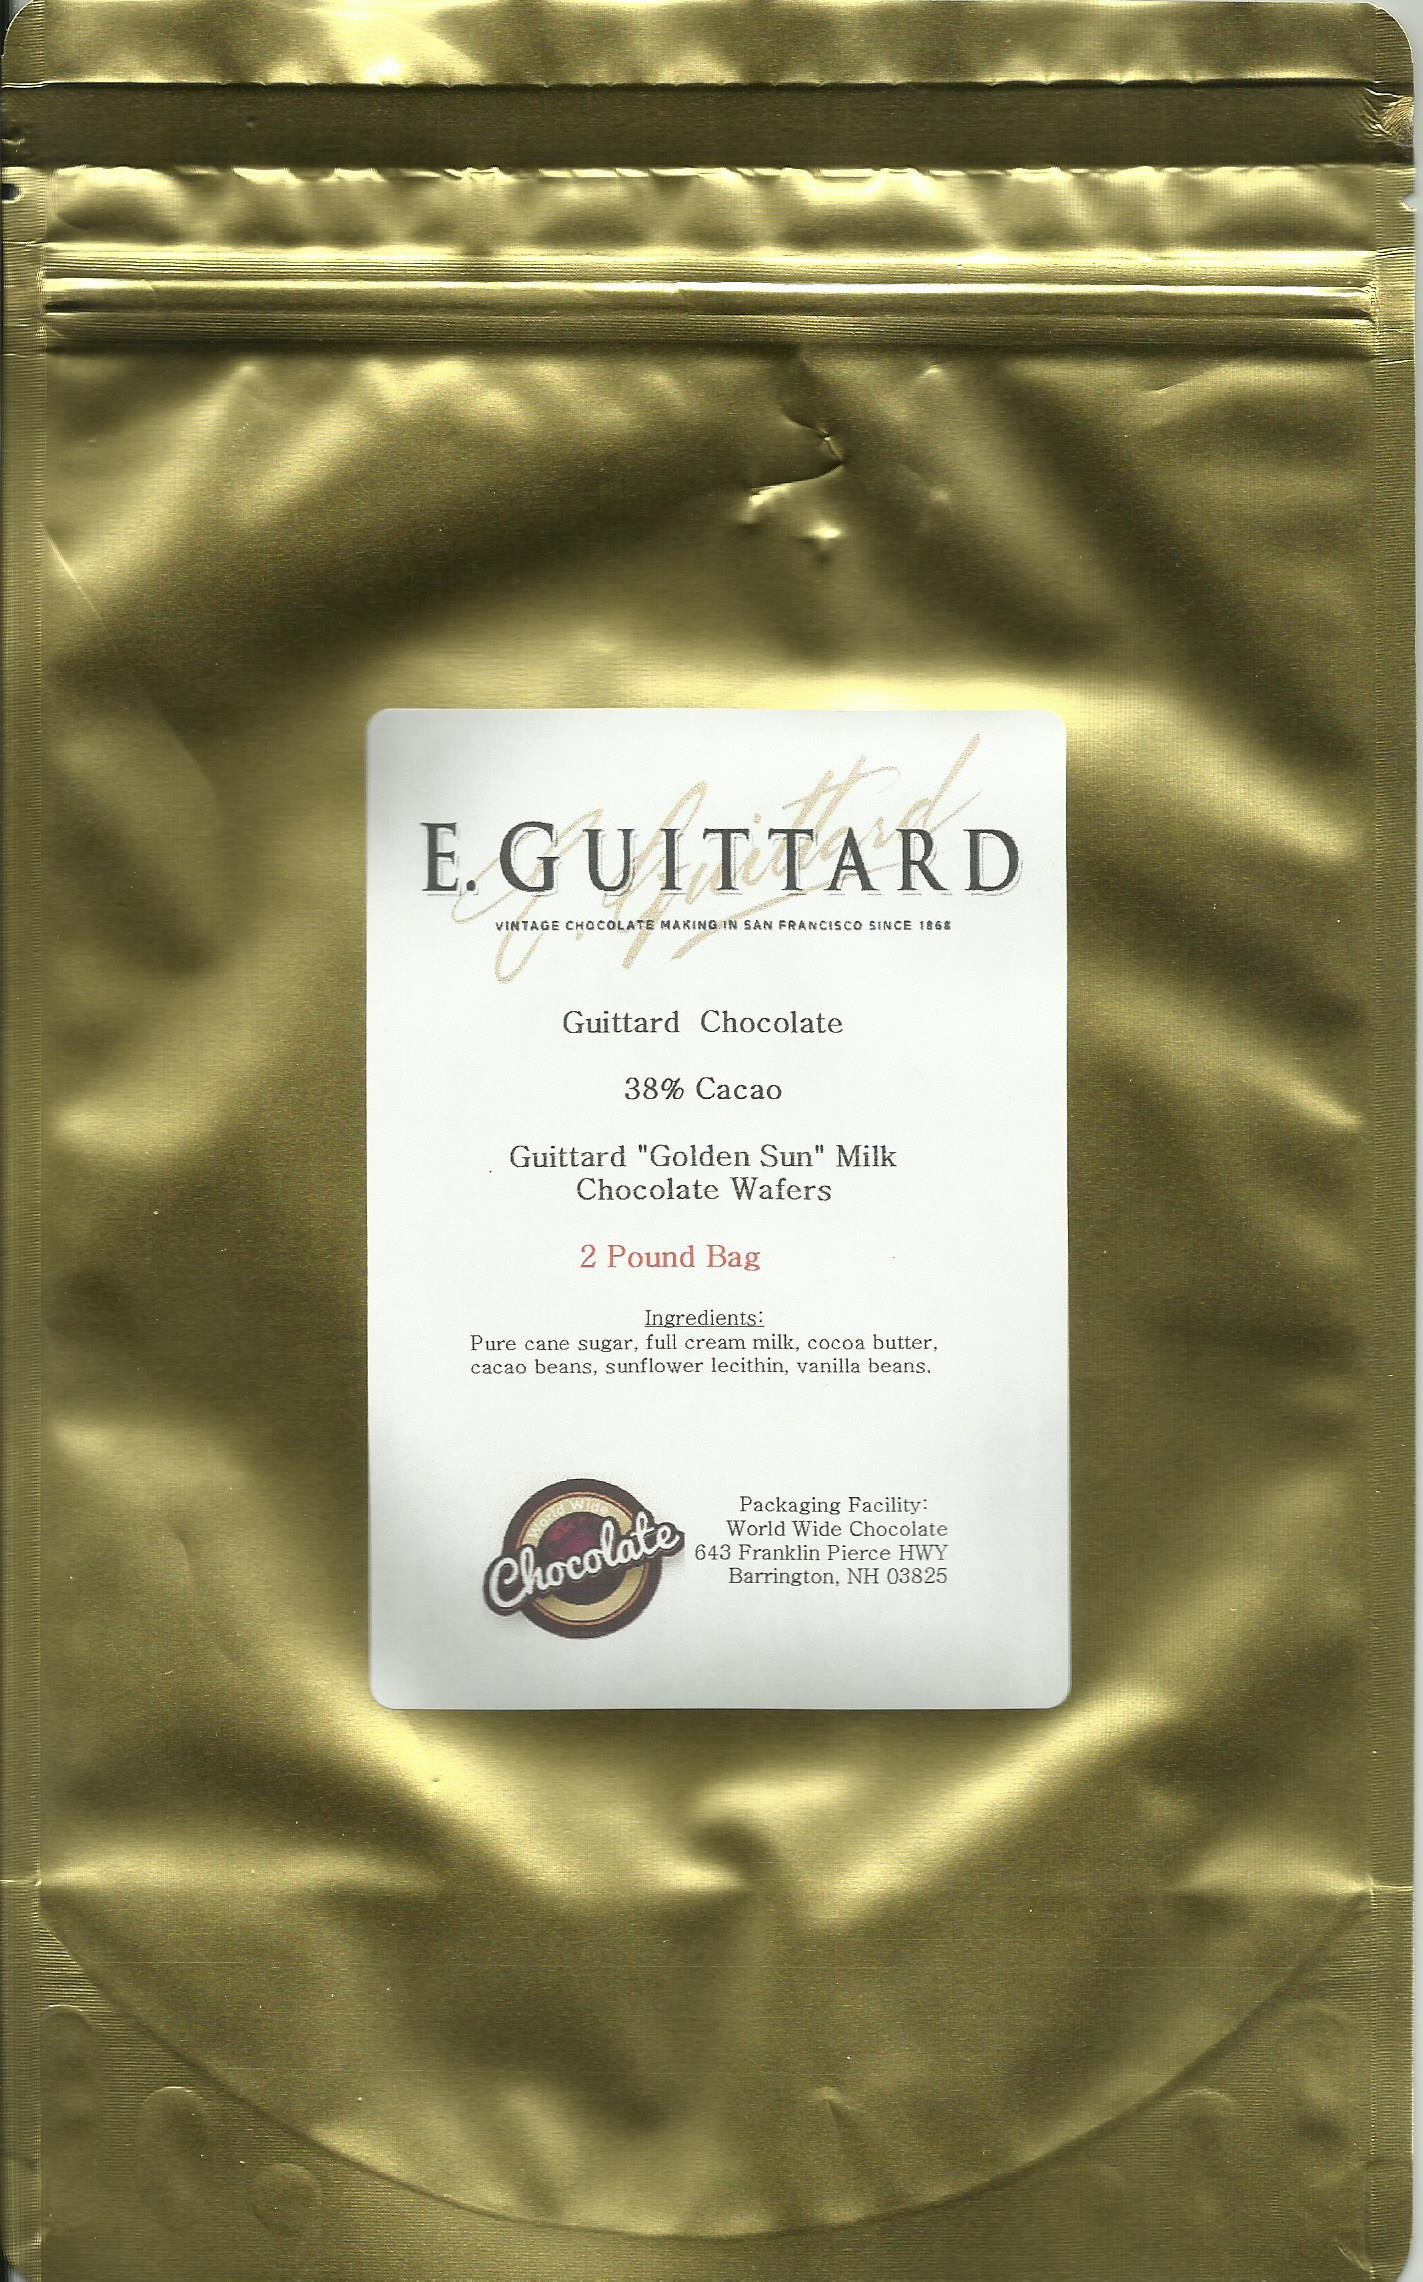 E. Guittard Chocolate - ''Soleil D'or'' (Golden Sun) Milk Chocolate Wafers for Baking and Eating, 38% Cocoa, Gold Bag, 2 Pound Bag